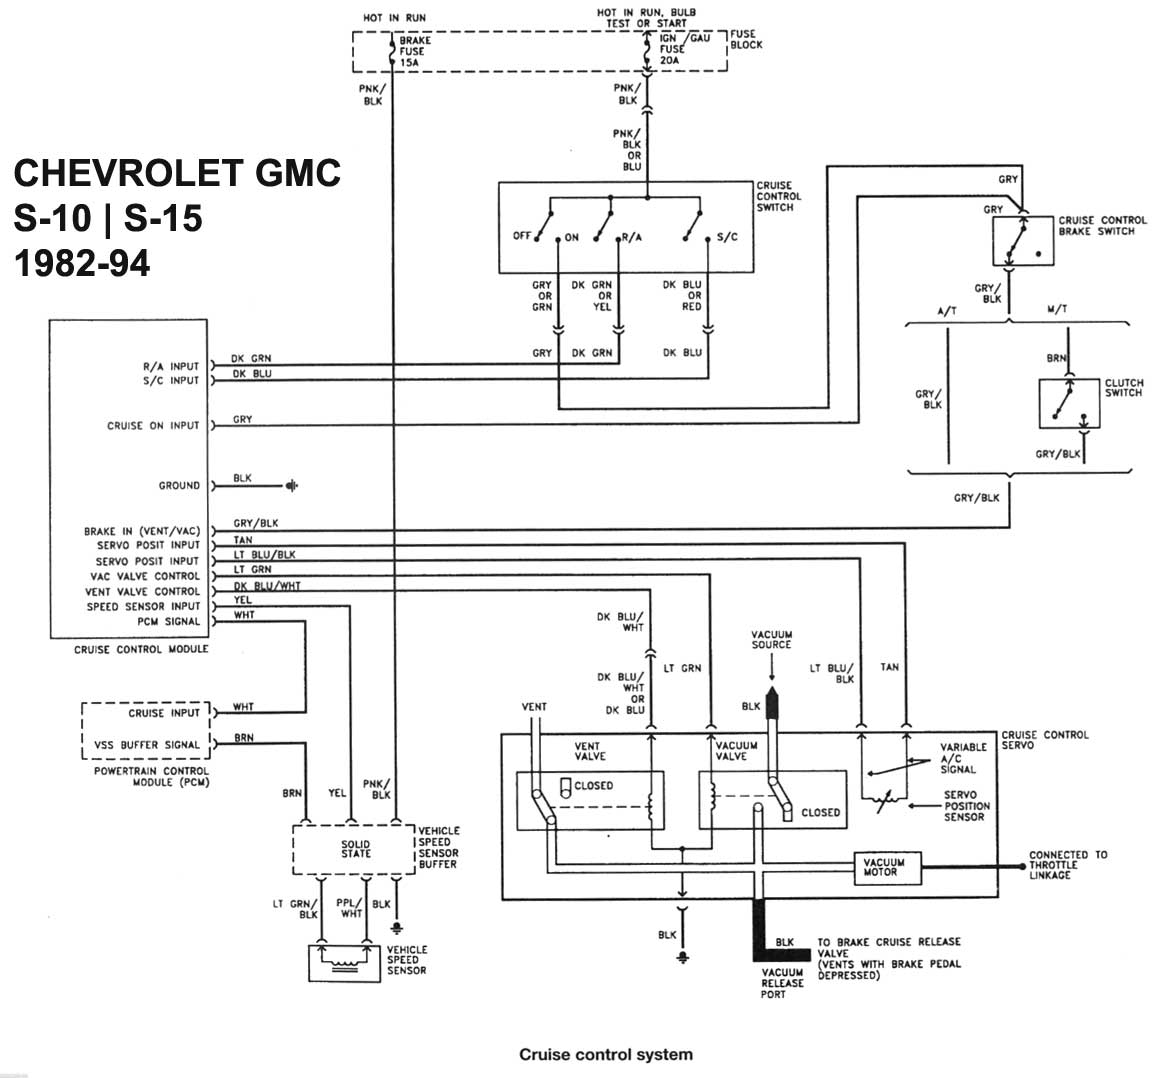 in 1986 chevy s10 pick up fuse box wiring diagrams for 2000 chevy s10 pick up